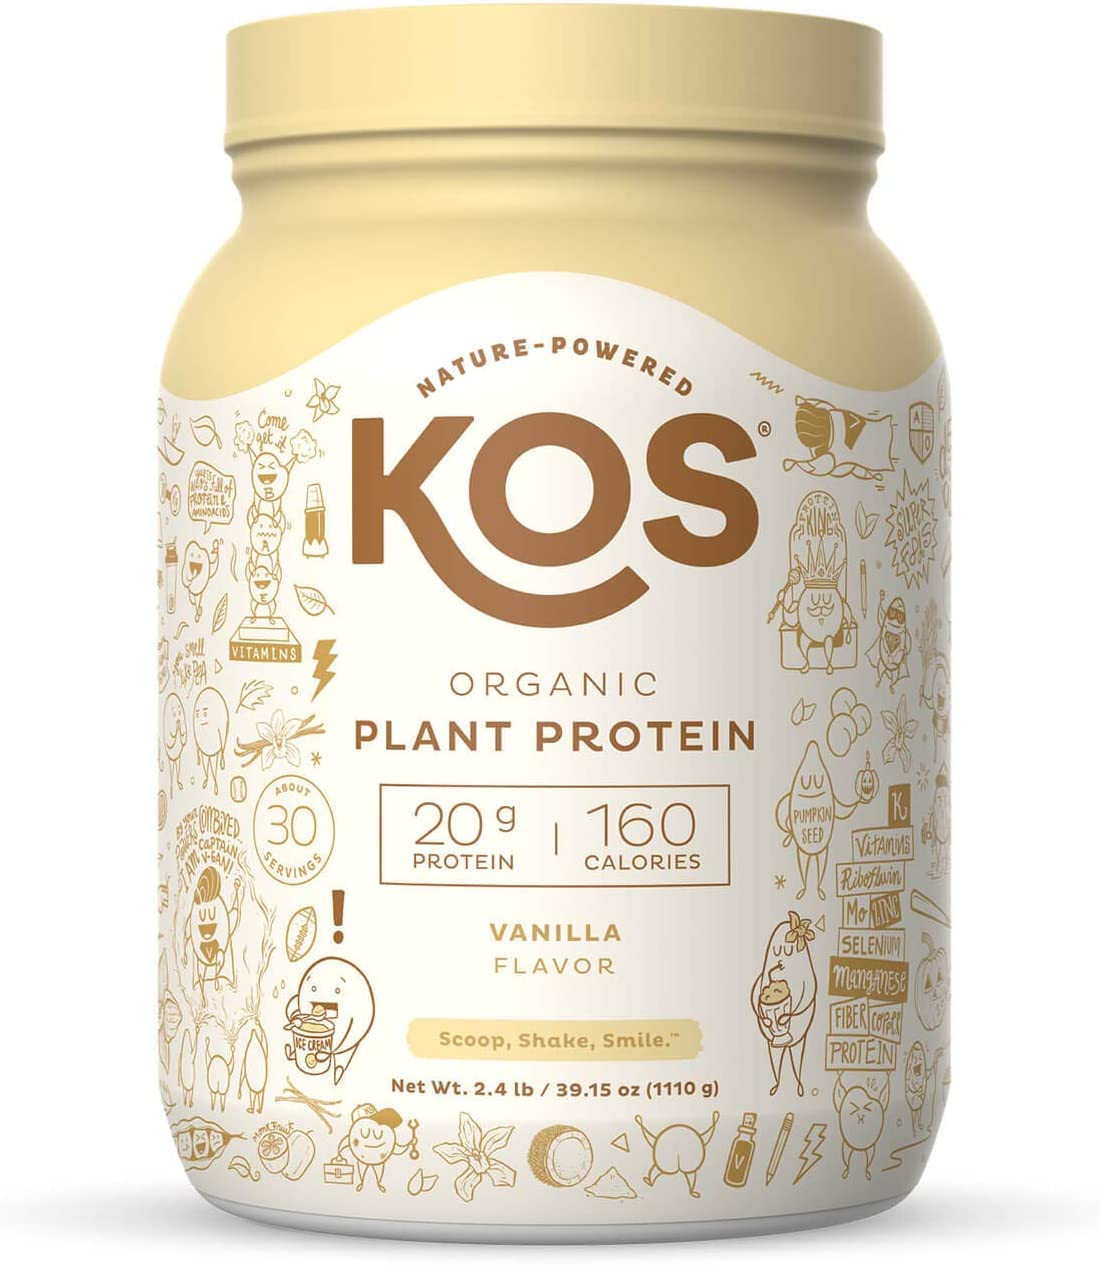 KOS Organic Plant Based Protein Powder, Vanilla - Delicious Vegan Protein Powder - Gluten Free, Dairy Free & Soy Free - 2.4 Pounds, 30 Servings: Health & Personal Care